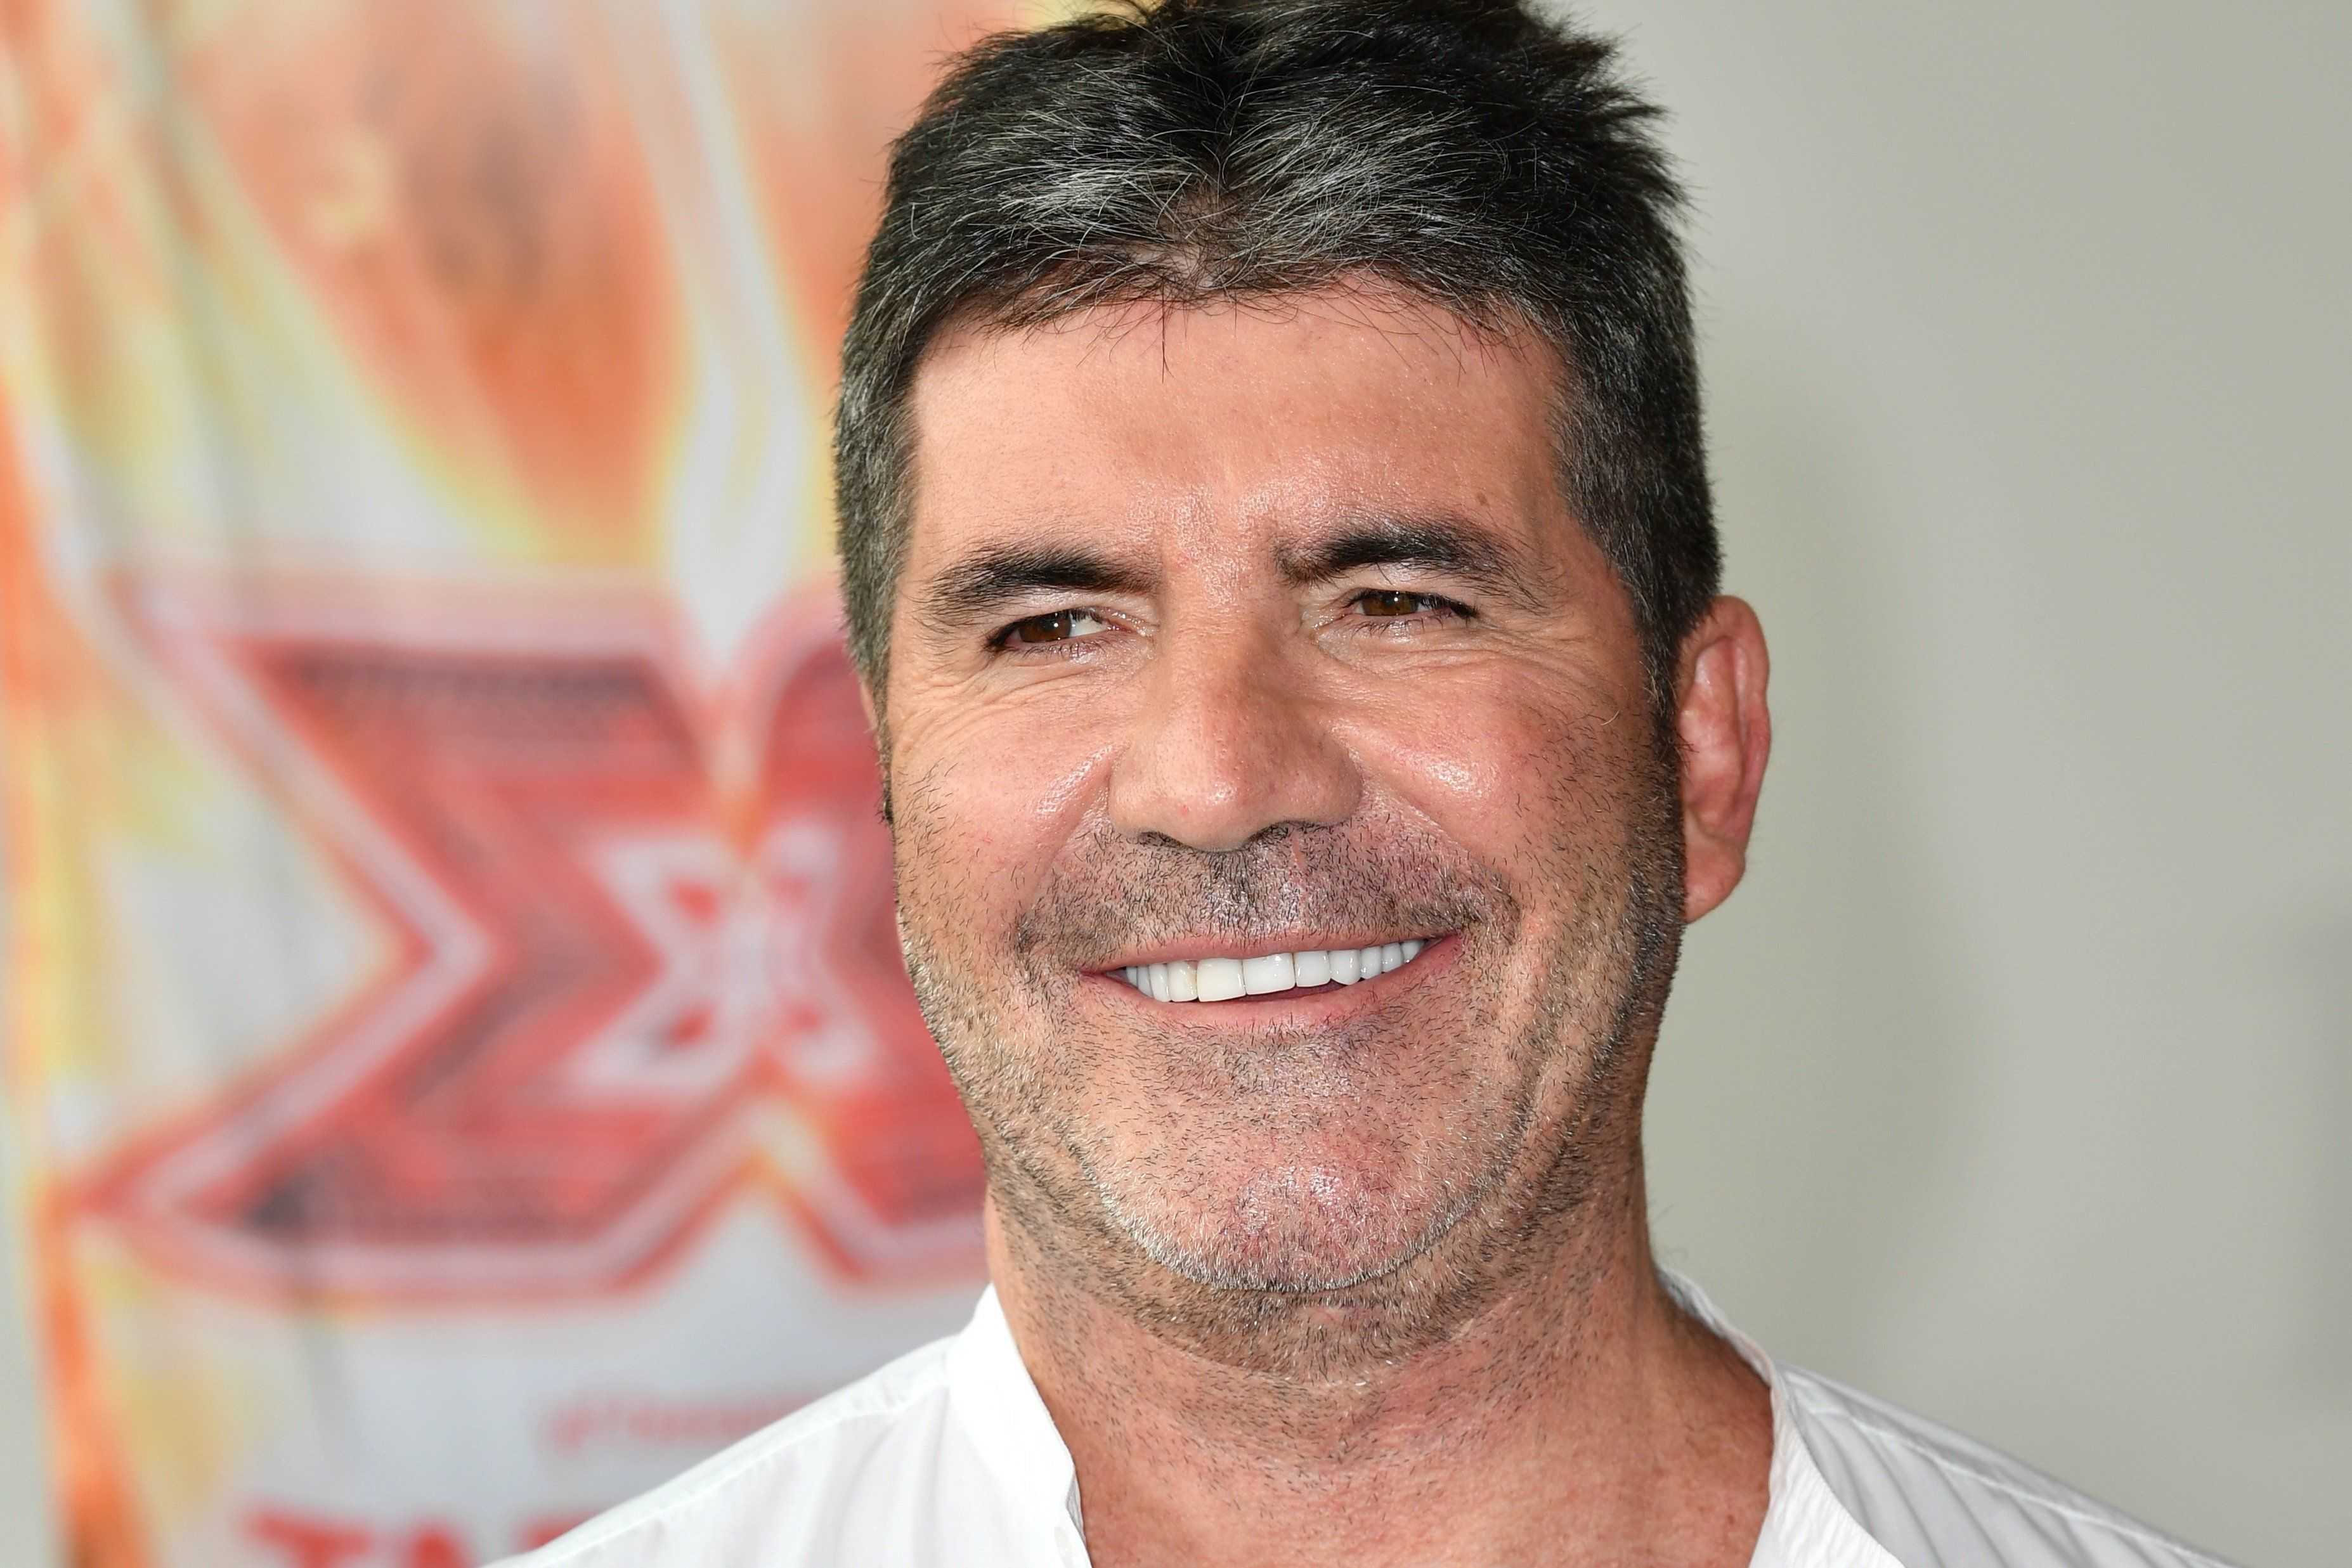 Simon Cowell Has (Another) Plan To Help Revive 'X